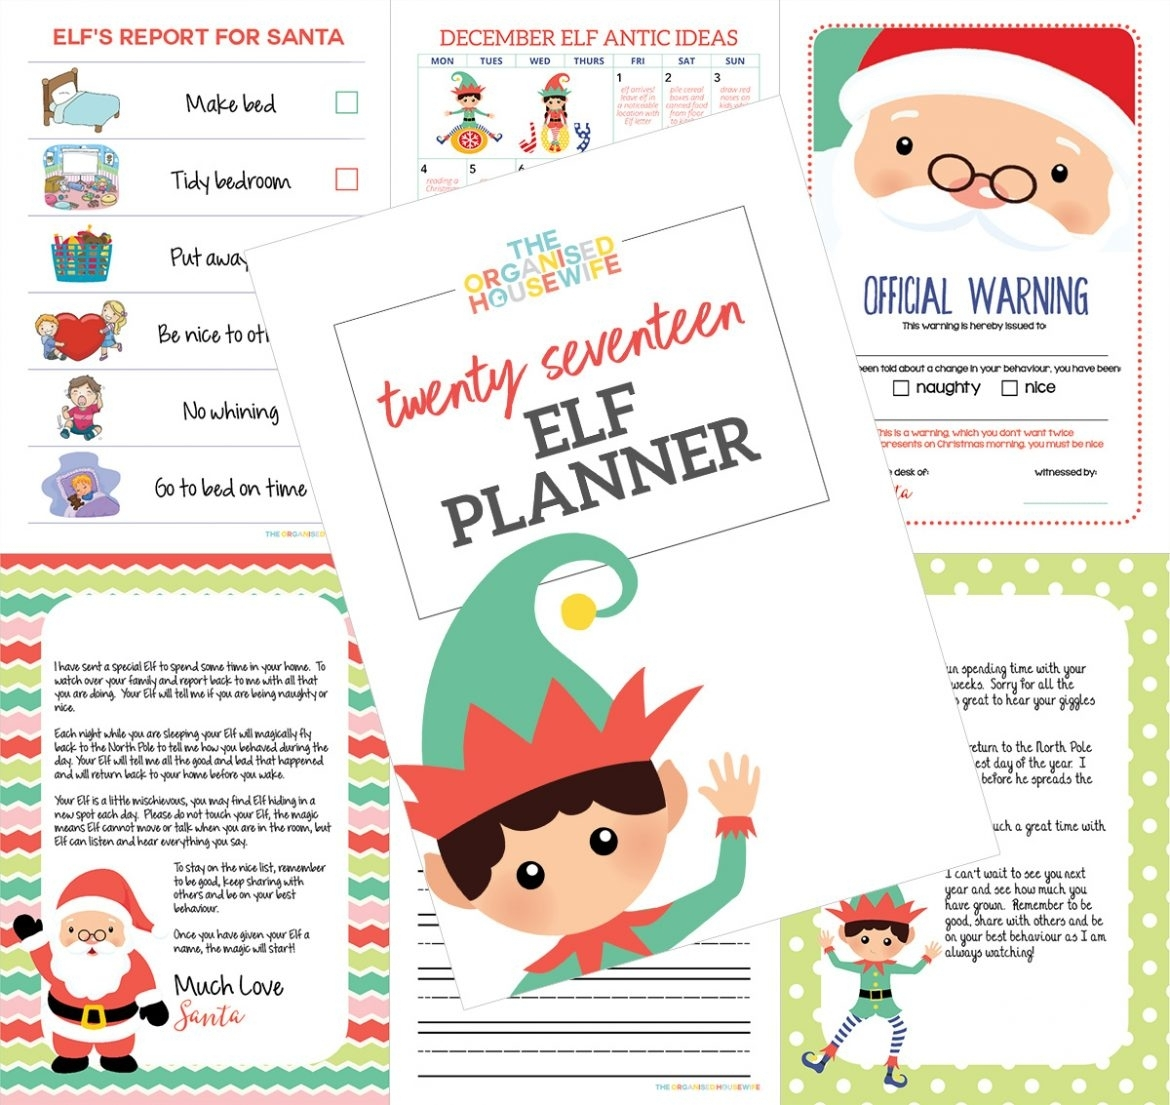 Ultimate Guide To Elf On The Shelf + 2017 Elf Planner - The intended for 12 Month Photo Calendar Ideas Naughty